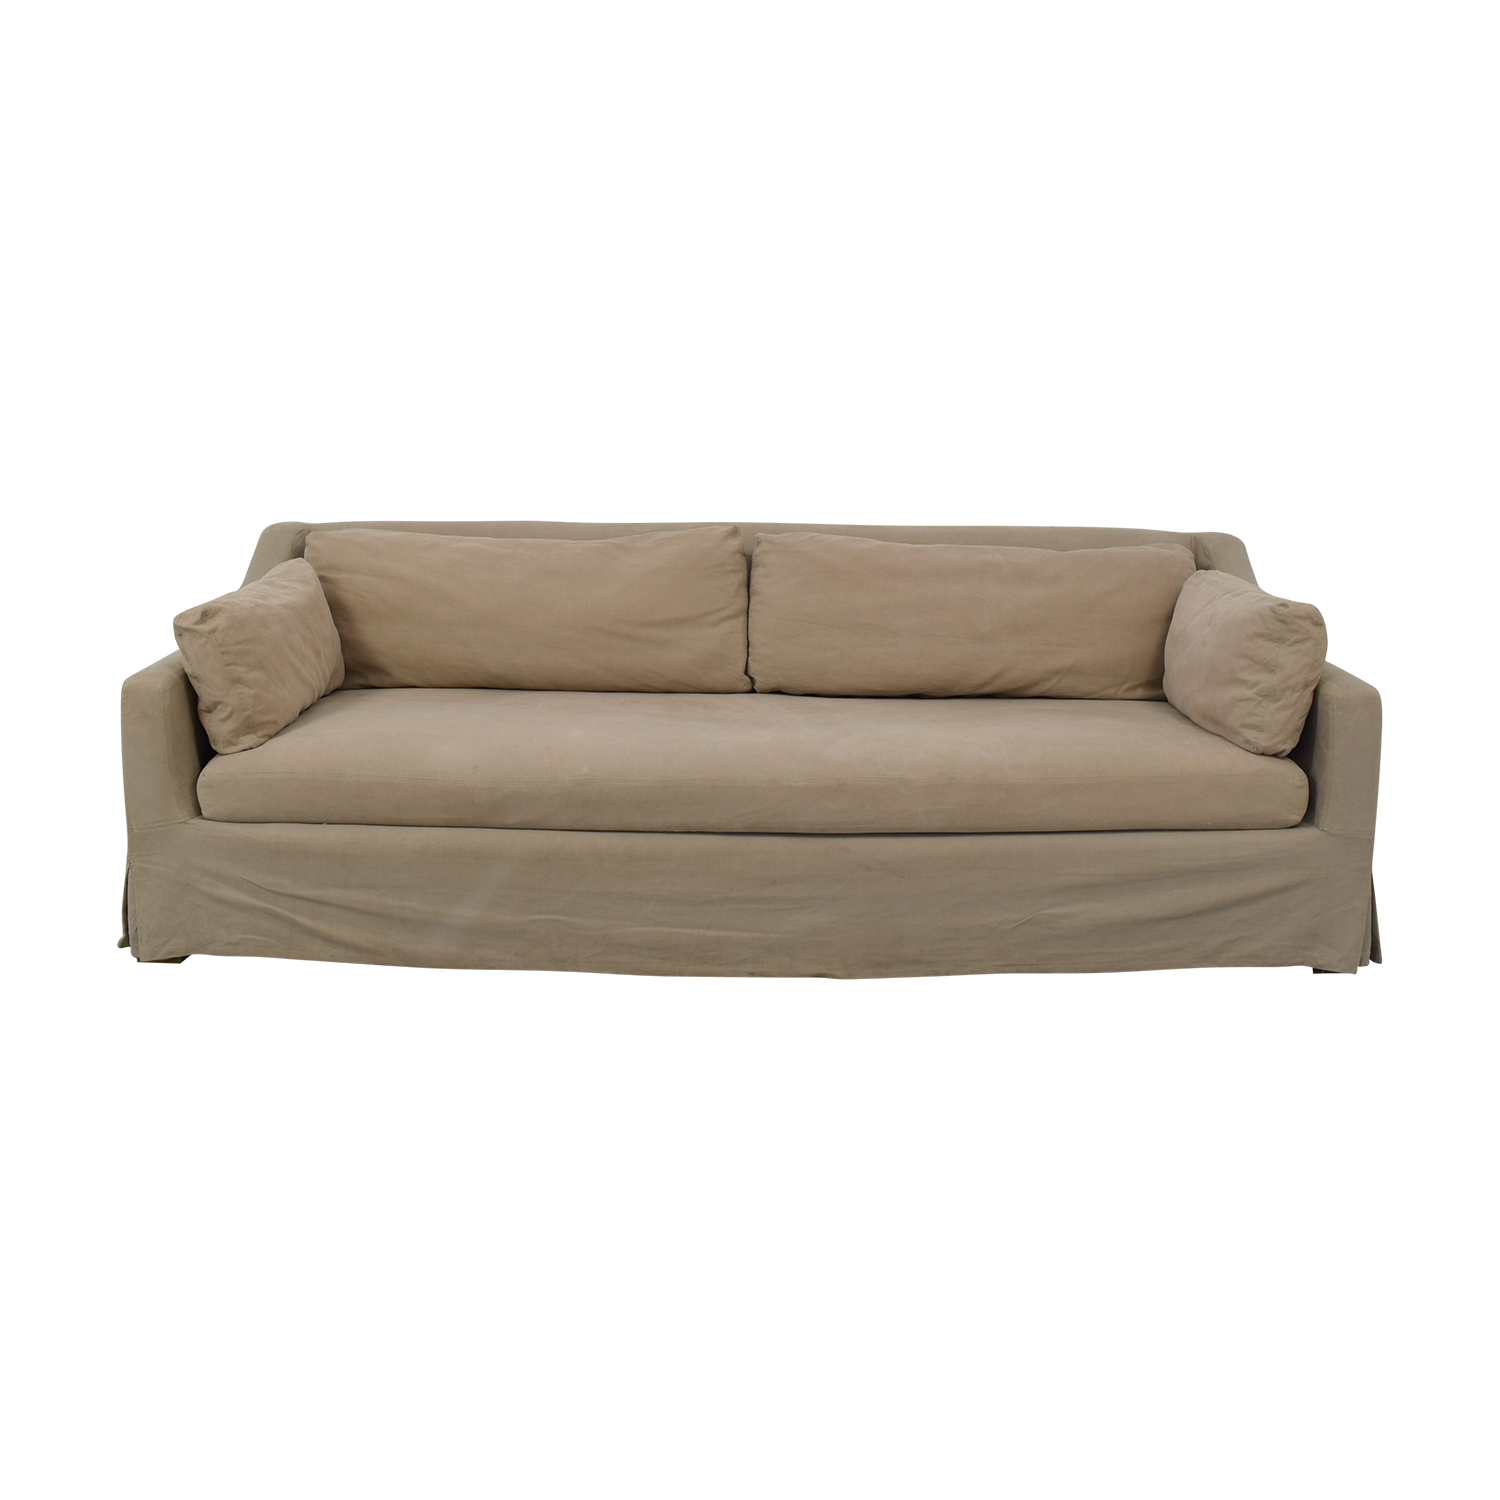 Restoration Hardware Slipcover Sofa Restoration Hardware